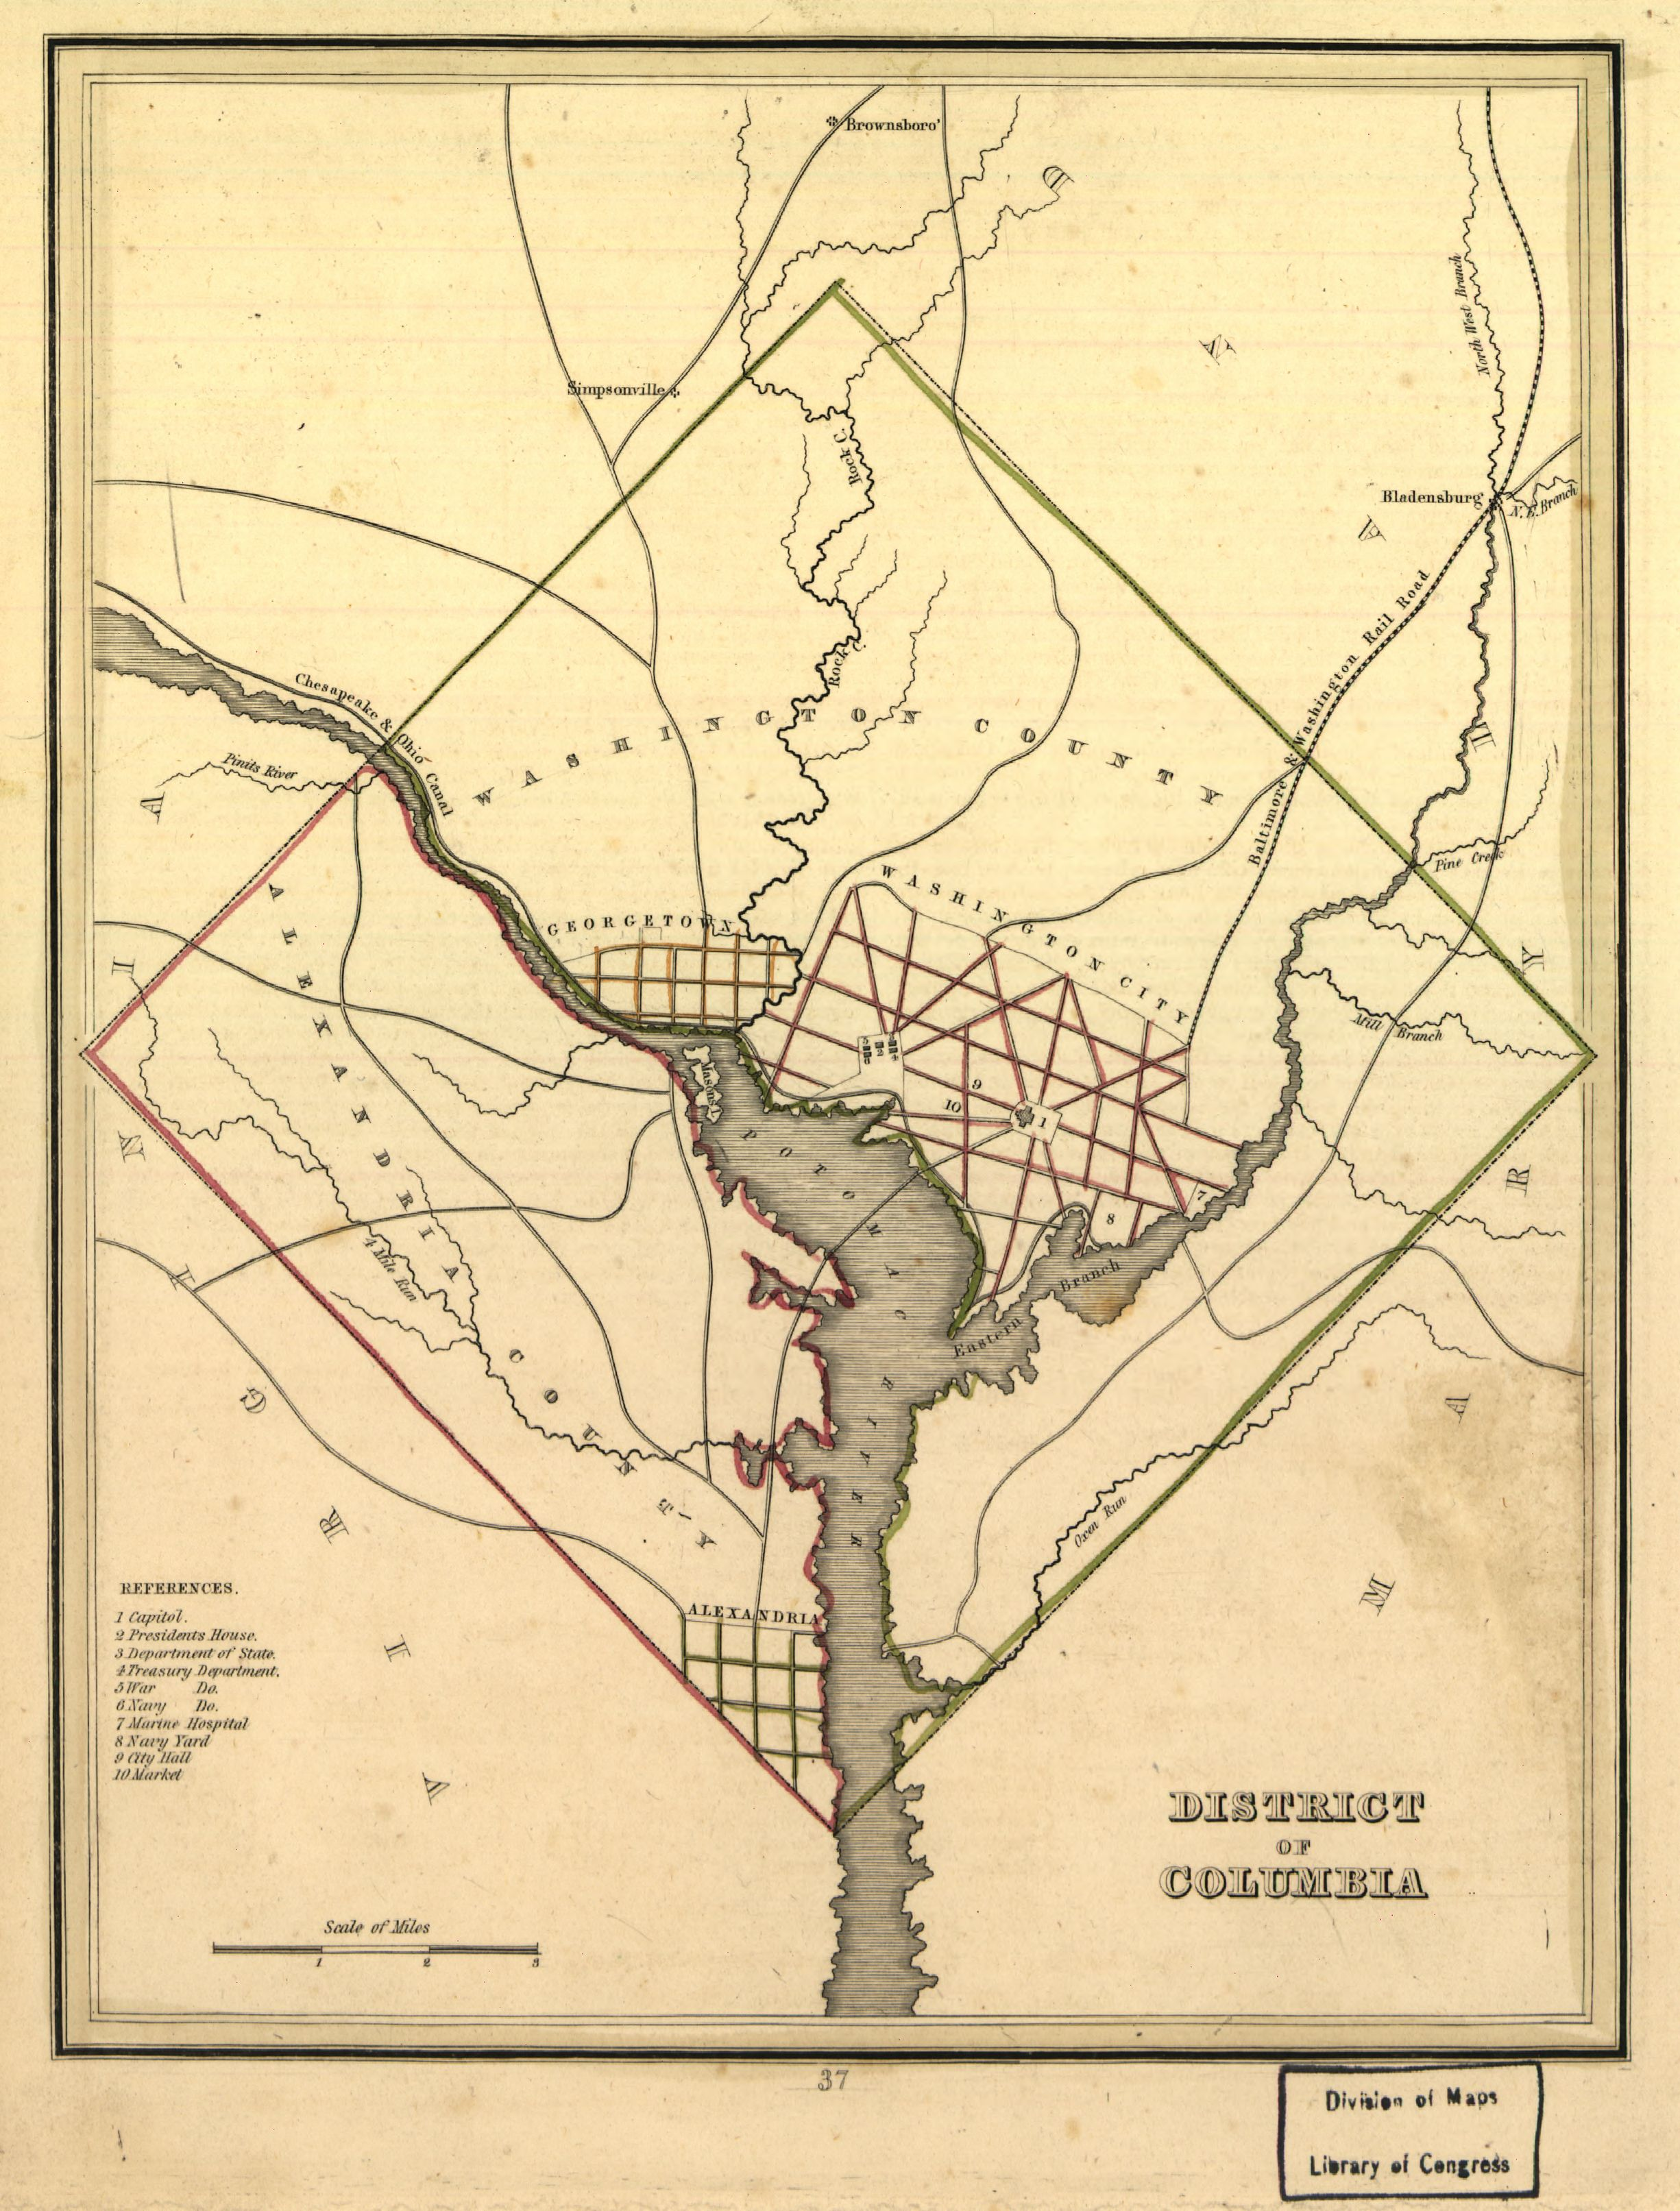 Map of the District of Columbia in 1835, prior to the ... Dc Us Map on dc city map, dc train map, dc neighborhood map, wa dc map, dc on a map, dc airports map, dc walking map, dc location on map, dc tourist map, dc tour map, dc museums map, dc transit map, dc state map, dc county map, dc capital map, dc crime map, dc attractions map, virginia map, dc road map, dc street maps,